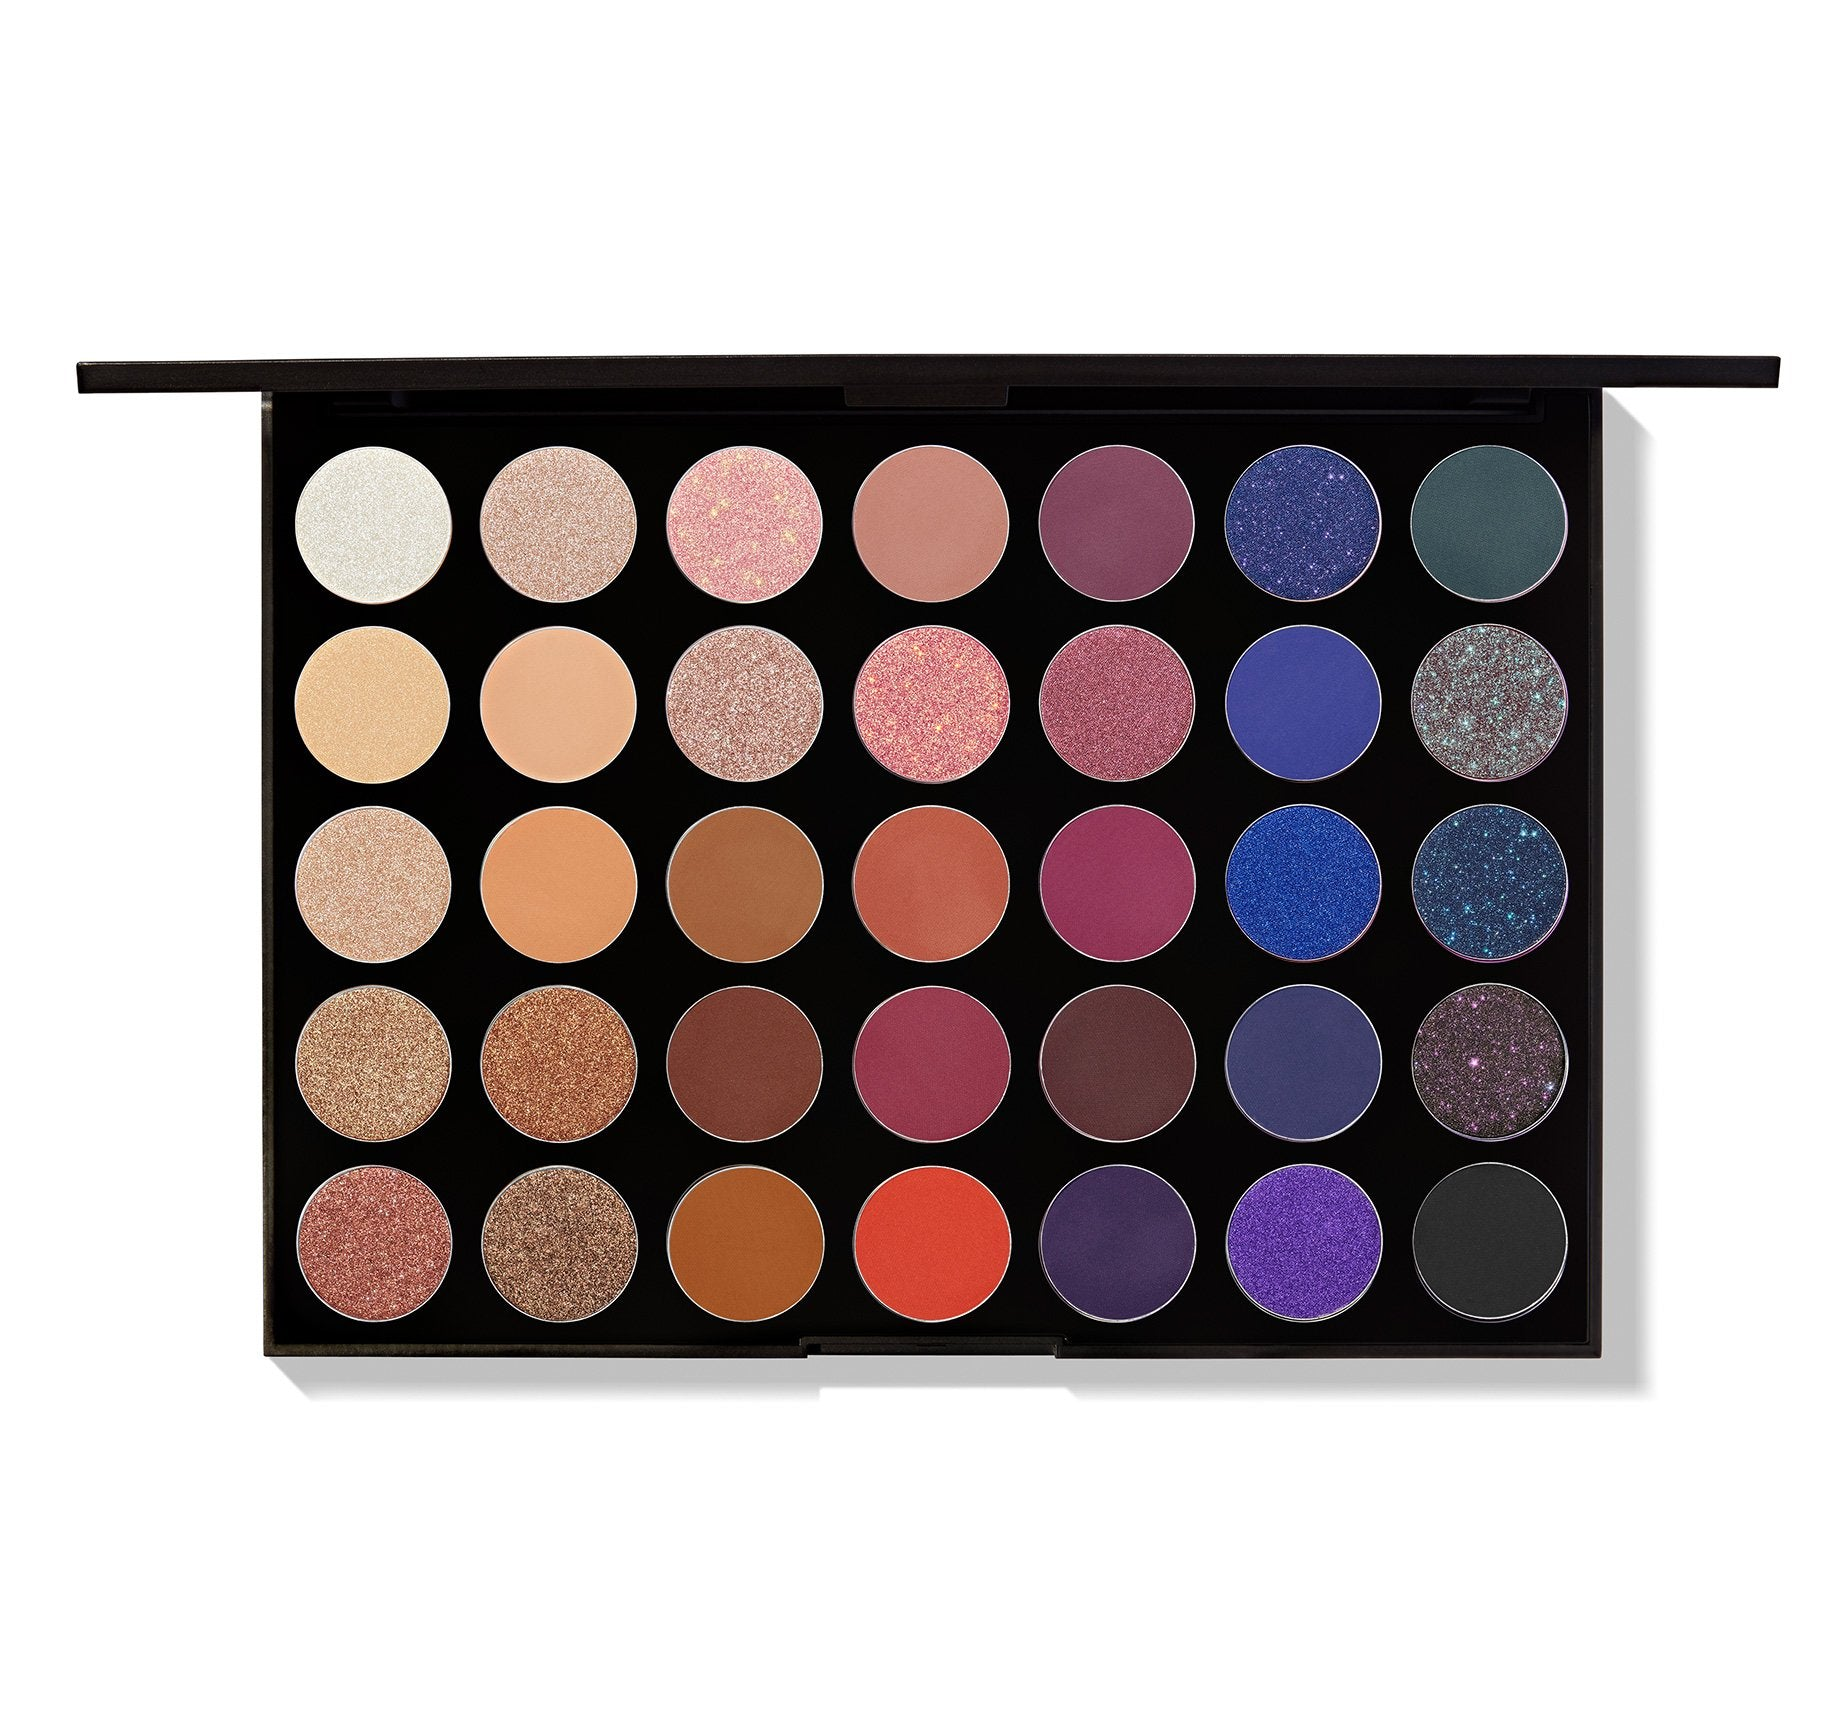 35V STUNNING VIBES ARTISTRY PALETTE, view larger image